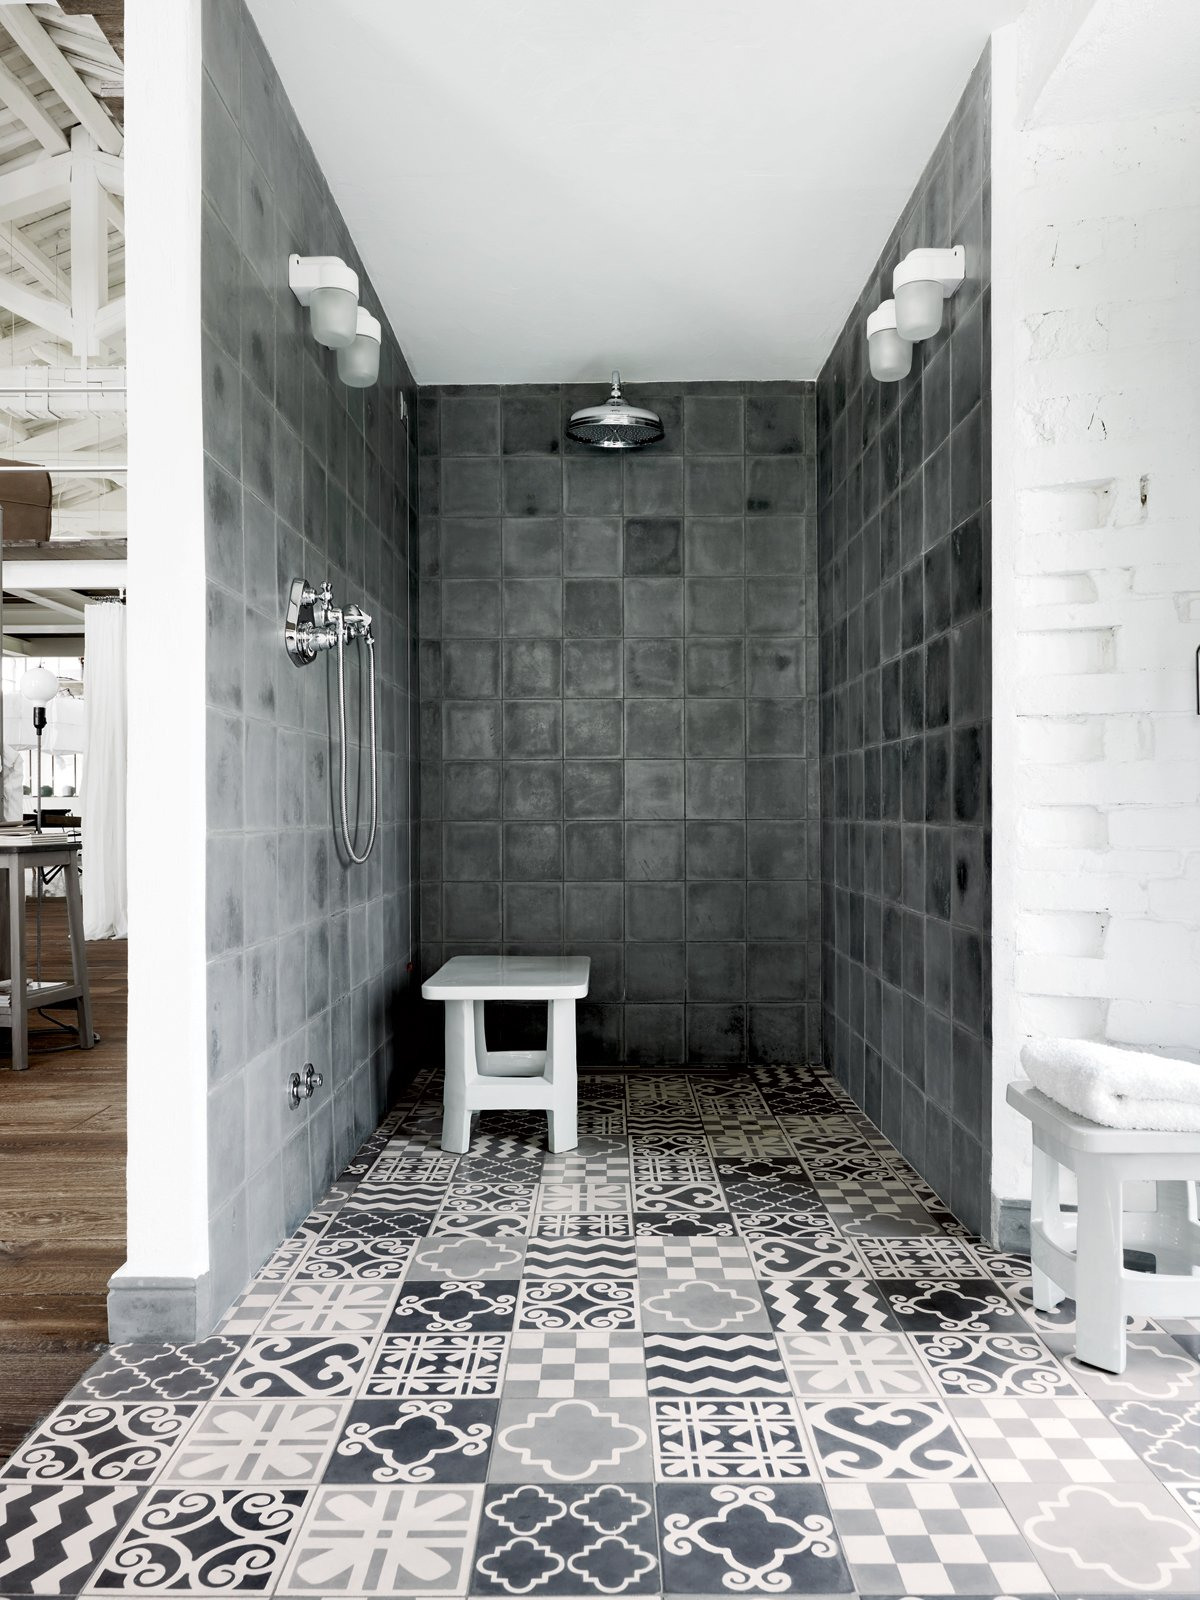 In the shower: custom Carocim tile, created in Morocco. Tagged: Bath Room and Open Shower.  Photo 6 of 11 in Paola Navone's Industrial Style Renovation in Italy